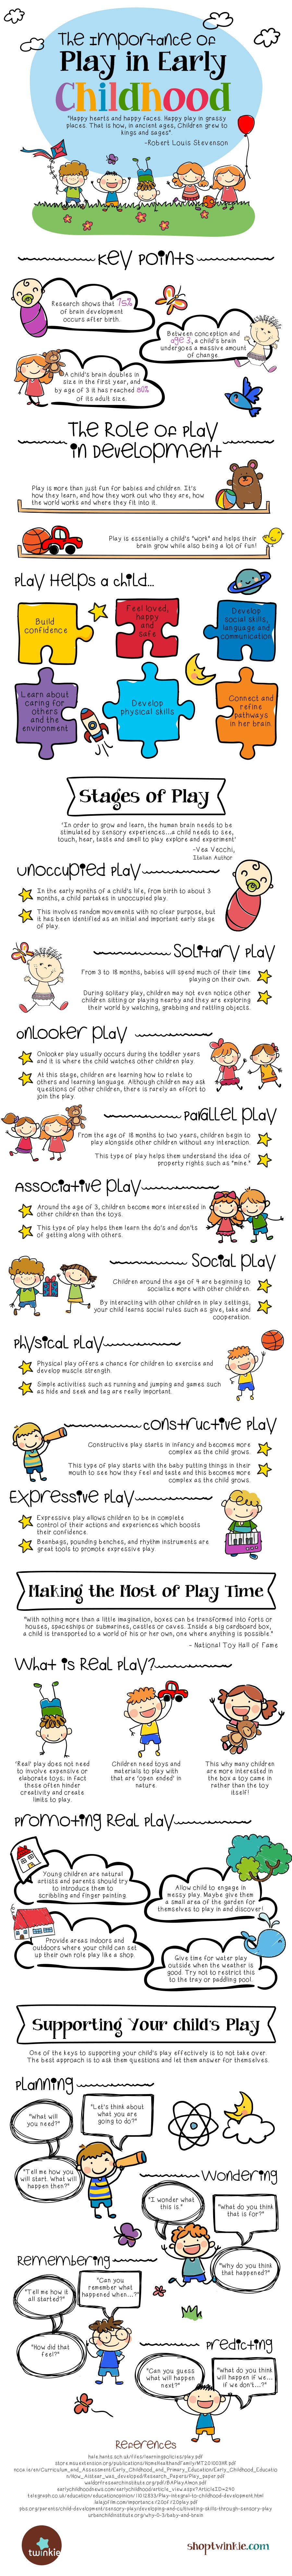 The Role of Play & Your Child: Infographic